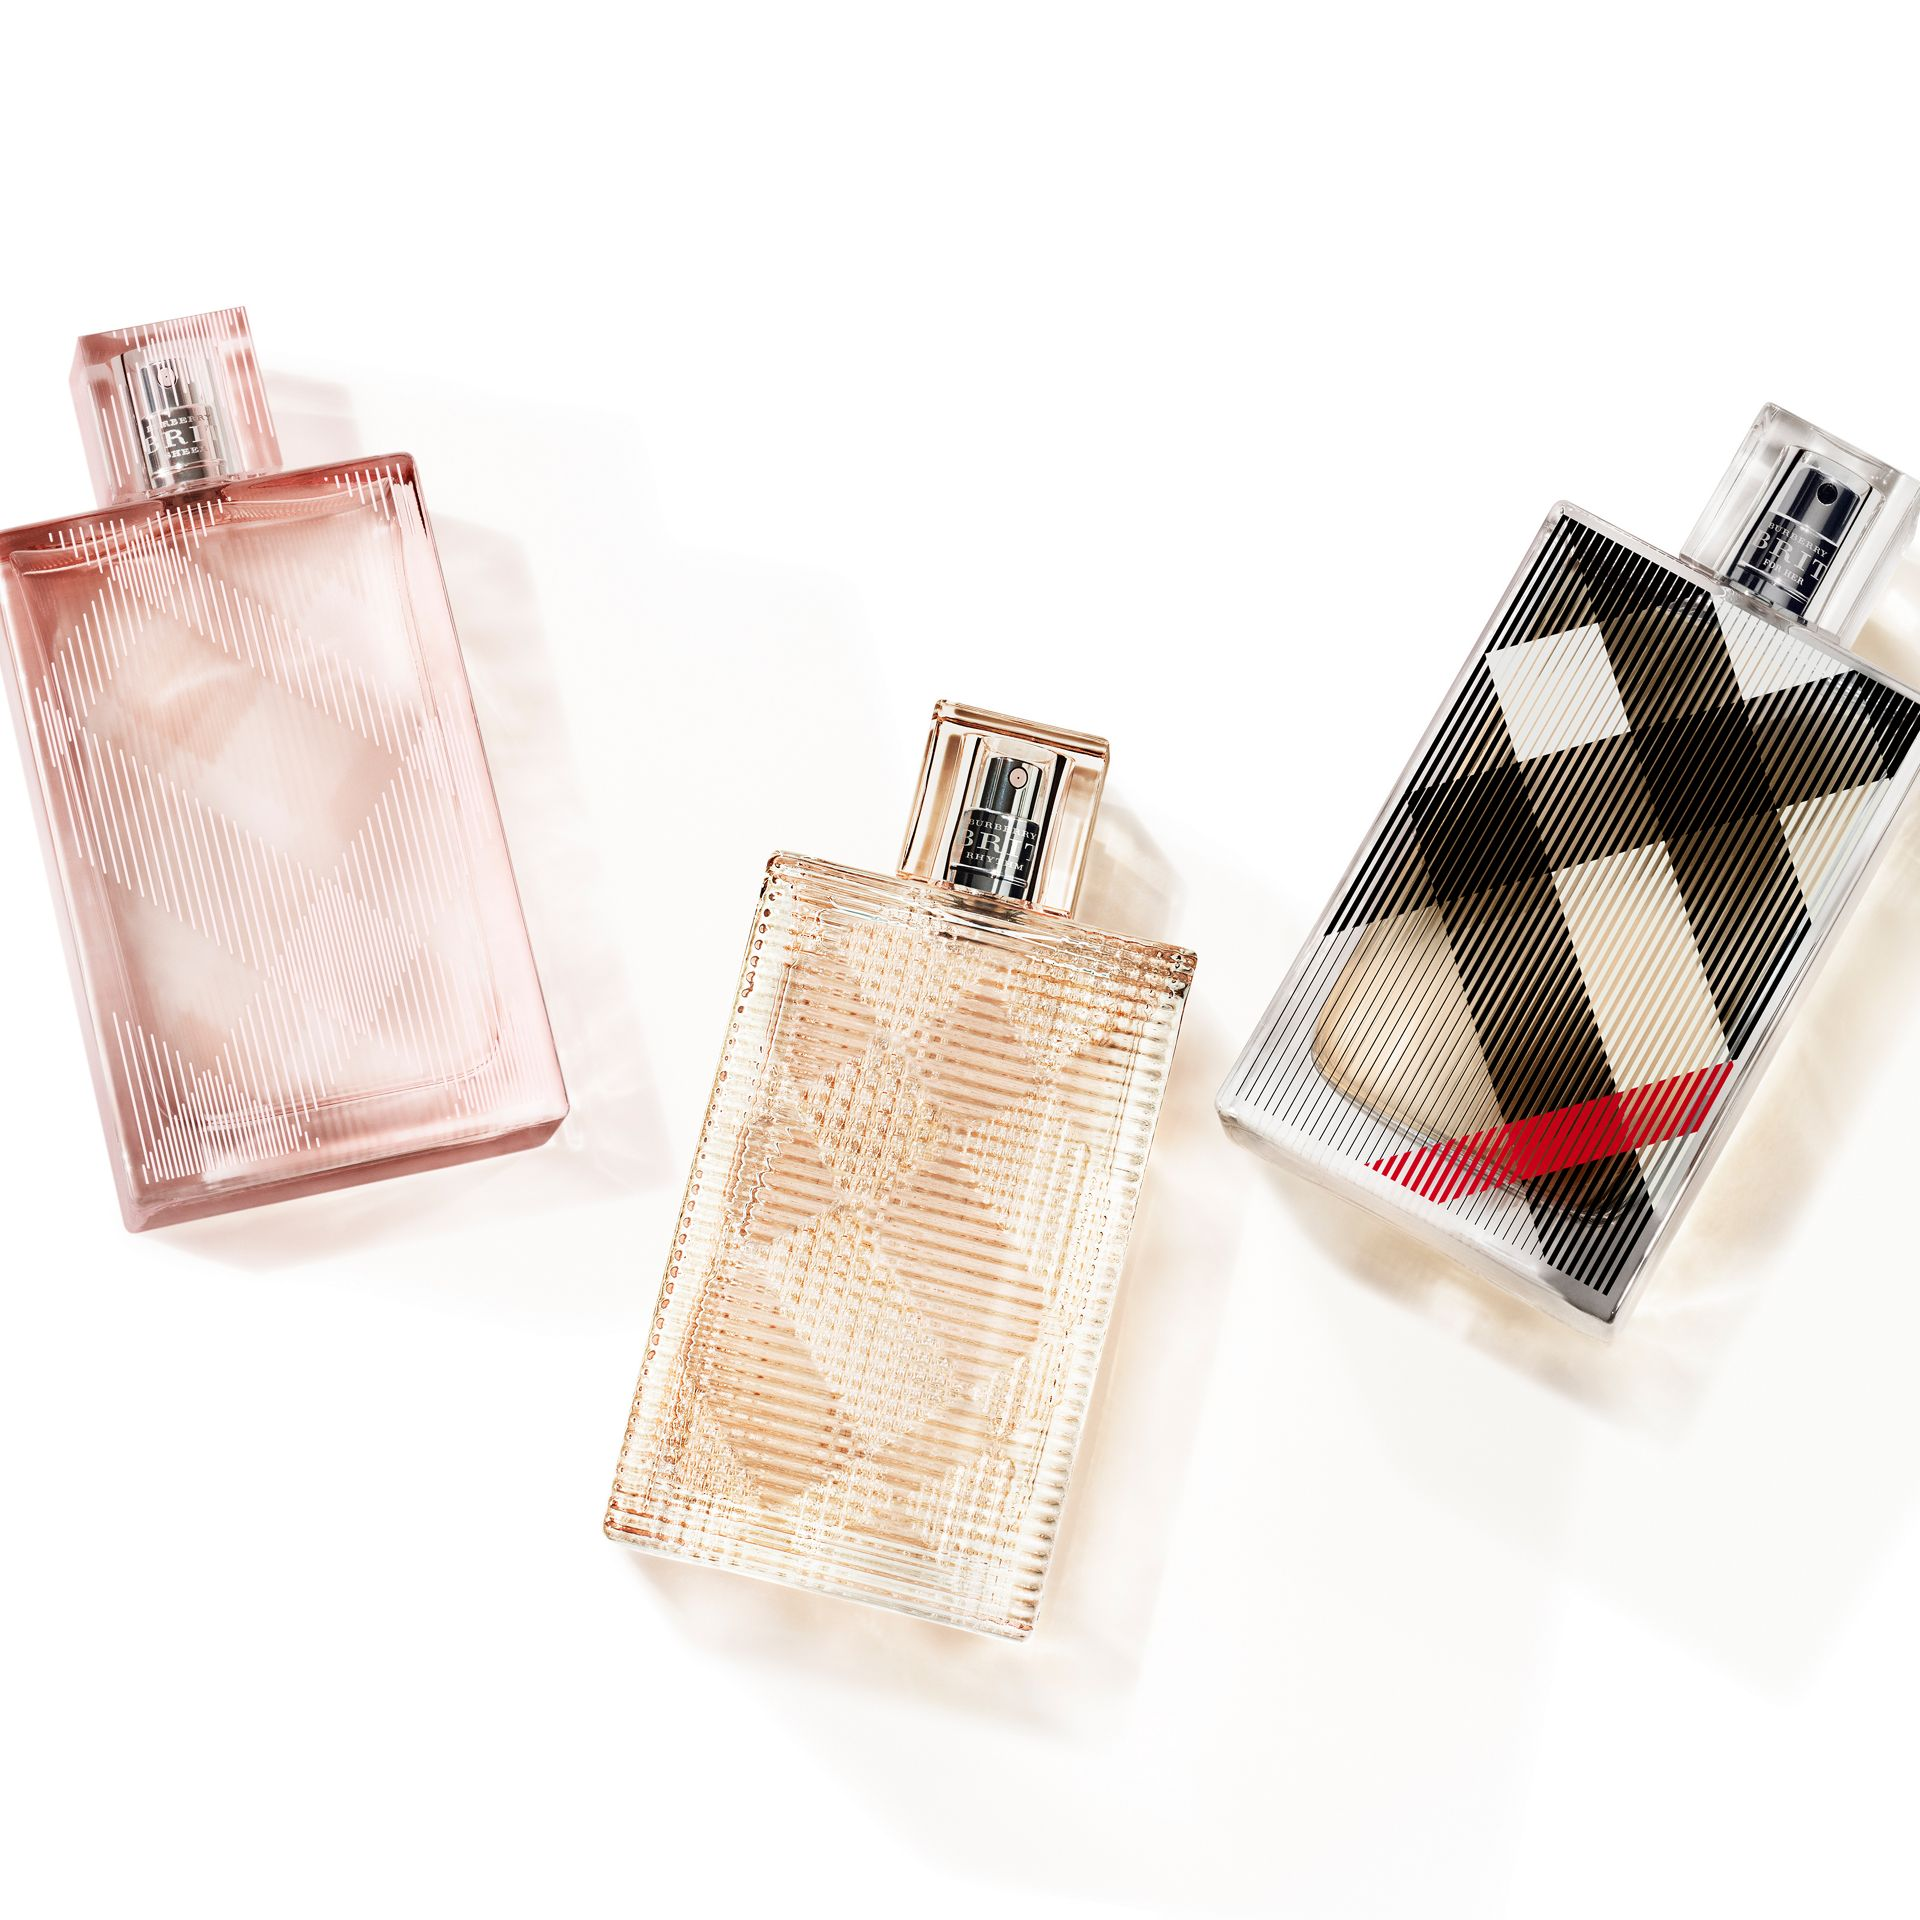 Burberry Brit Sheer Eau de Toilette 30ml - Women | Burberry Singapore - gallery image 3